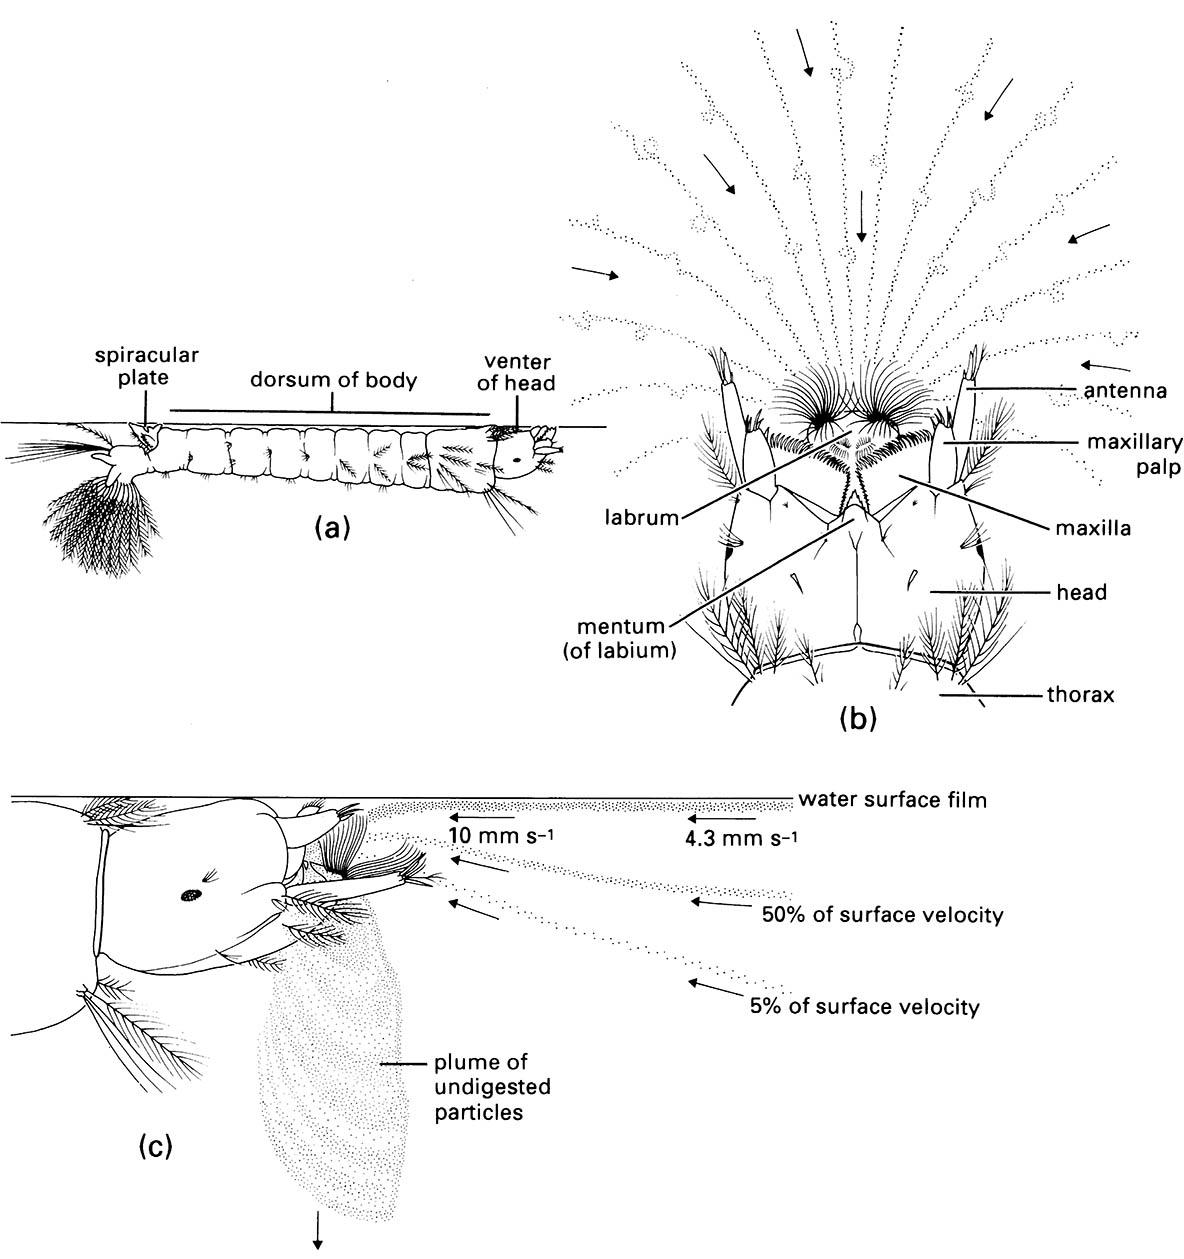 The mouthparts and feeding currents of a mosquito larva of Anopheles quadrimaculatus (Diptera: Culicidae).